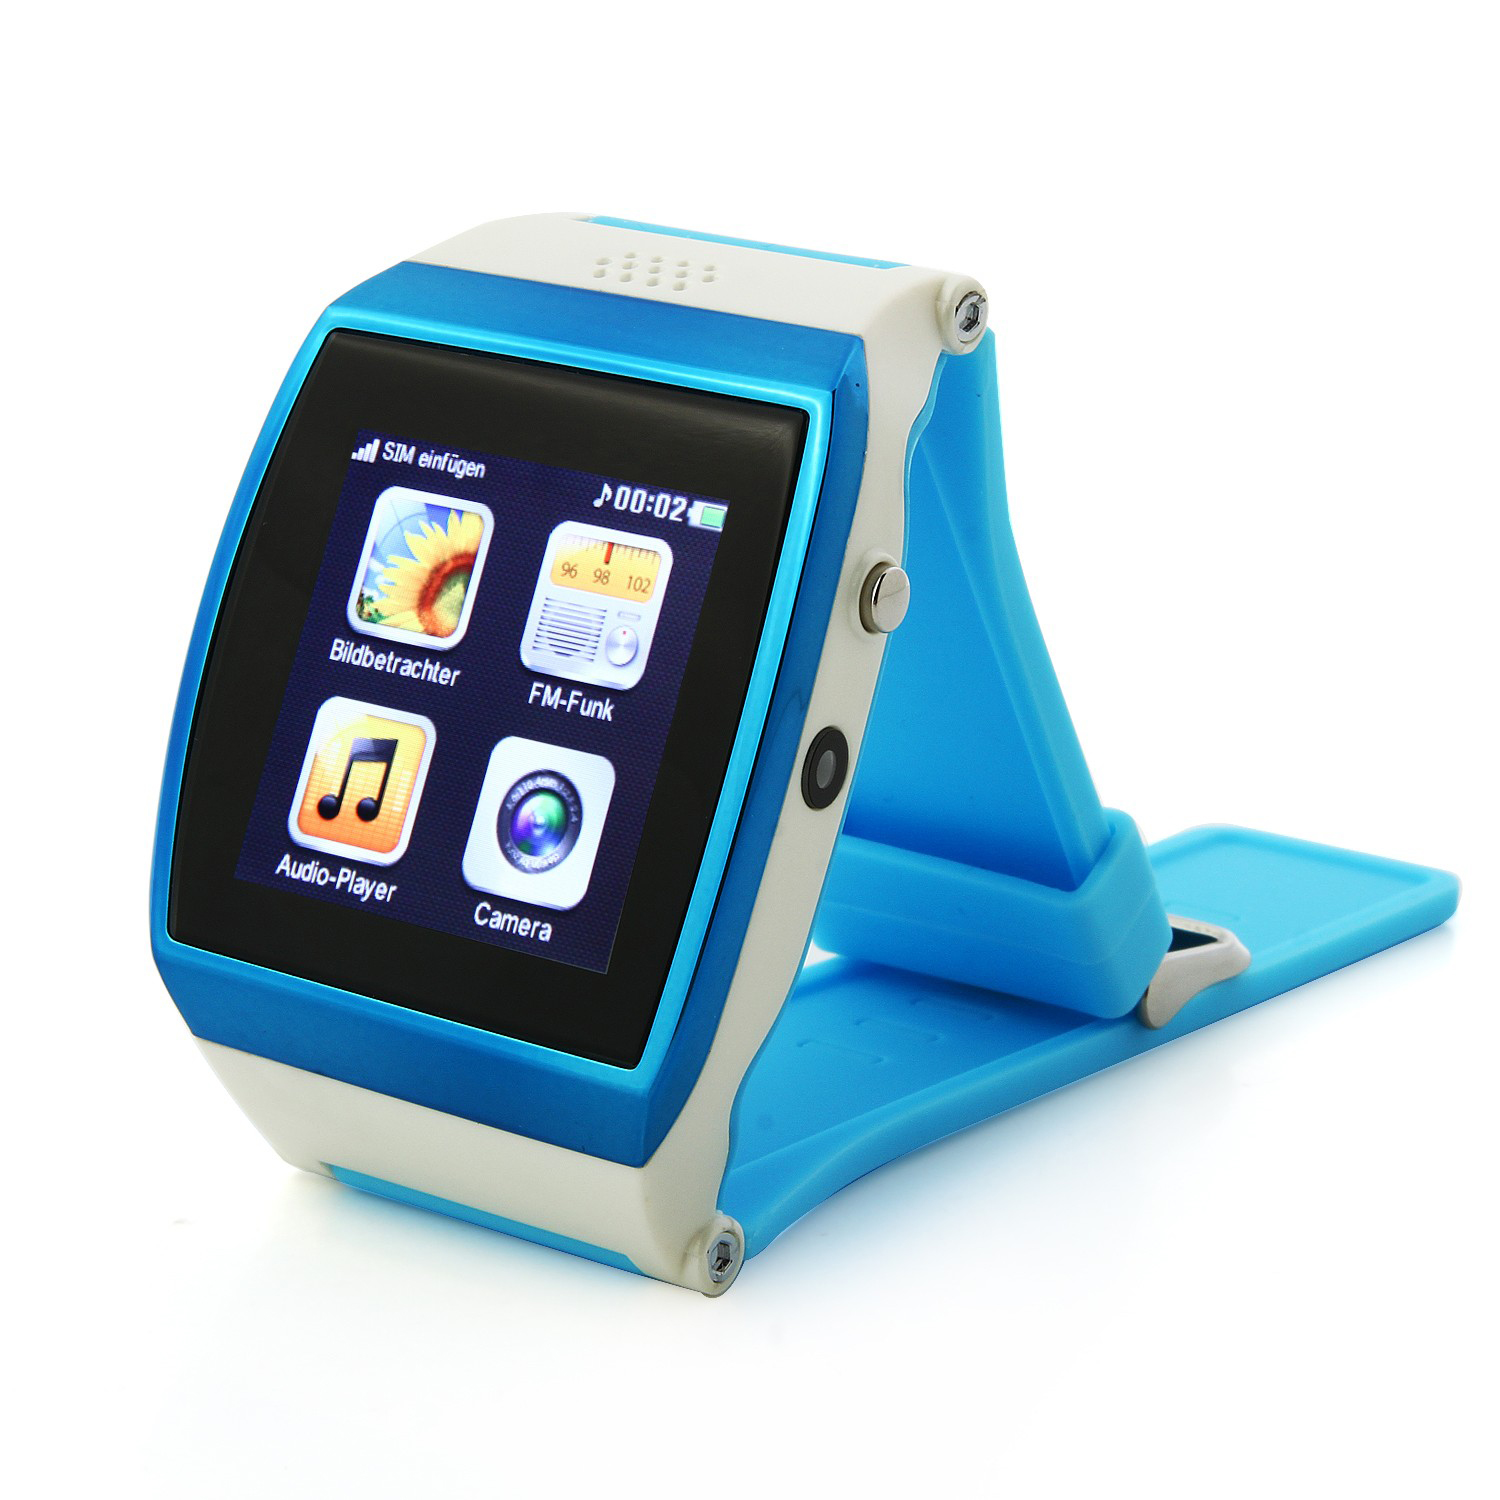 "Wholesale 1.55"" Capacitive IPS Touch Screen Watch Shaped Cell Phone with Bluetooth, FM Radio, Camera, Alarm Clock (Blue)"